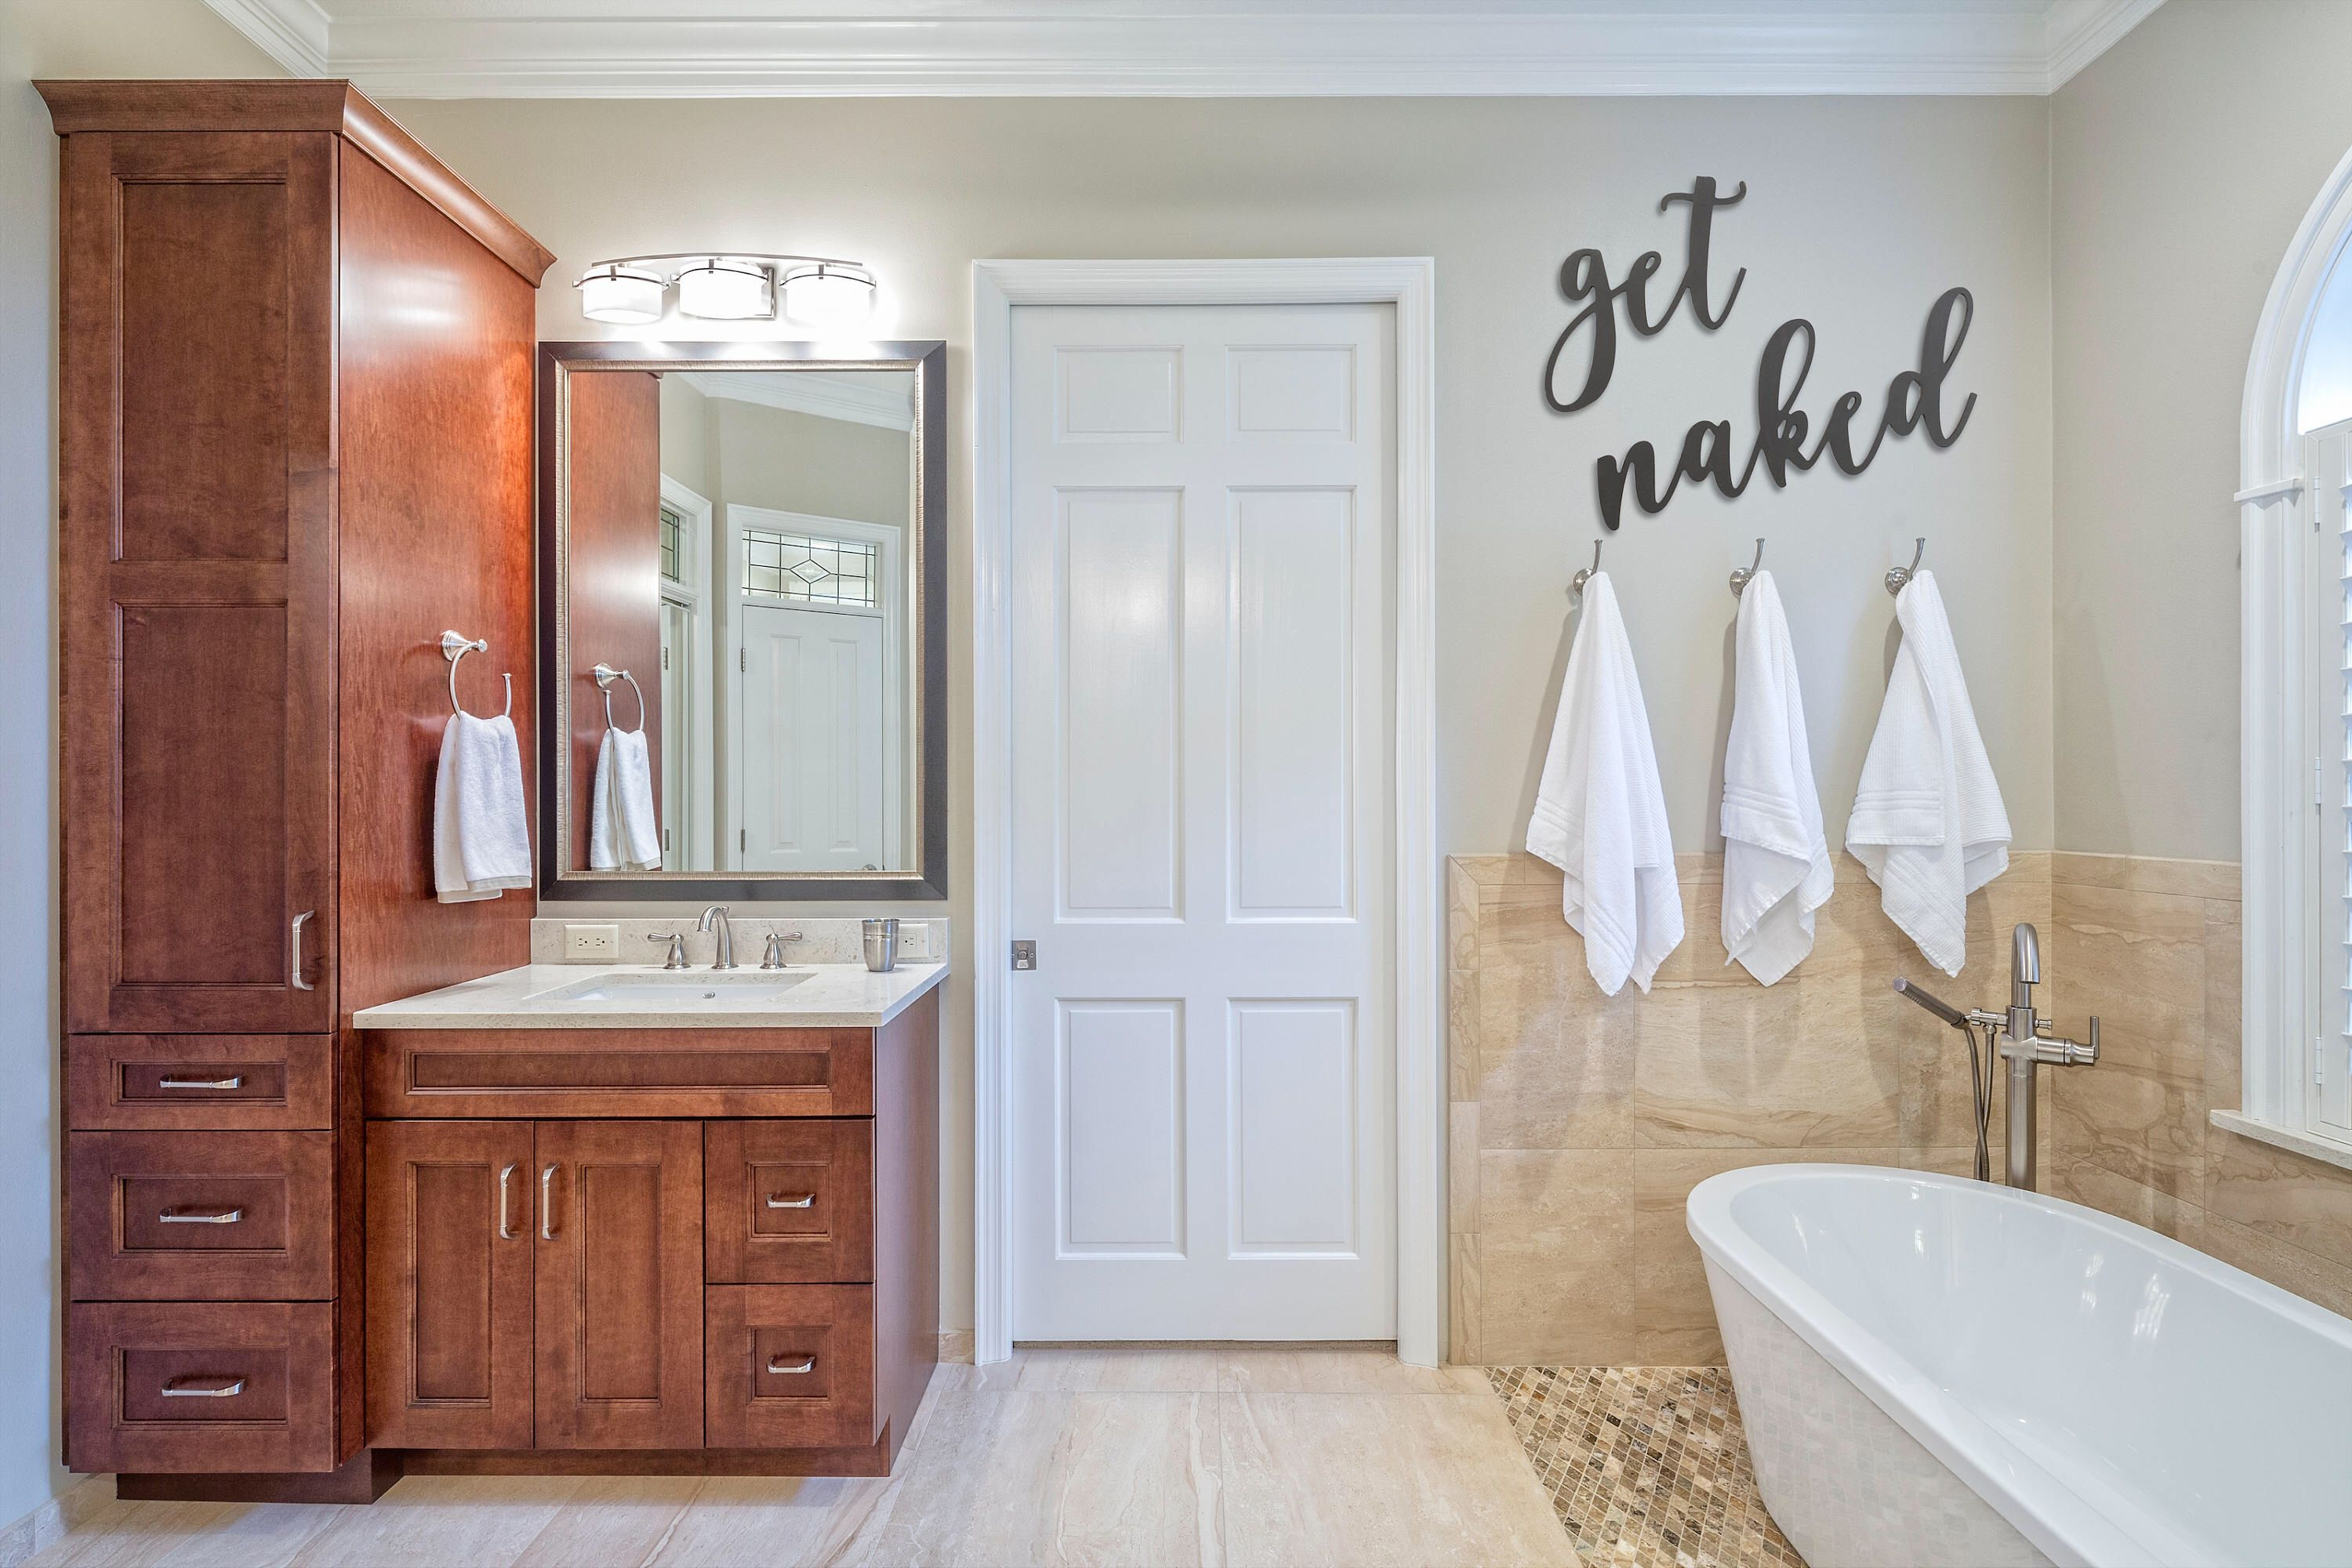 Get Naked* Bathroom* Housewarming* Custom* Word* Farmhouse* Cursive* Wood